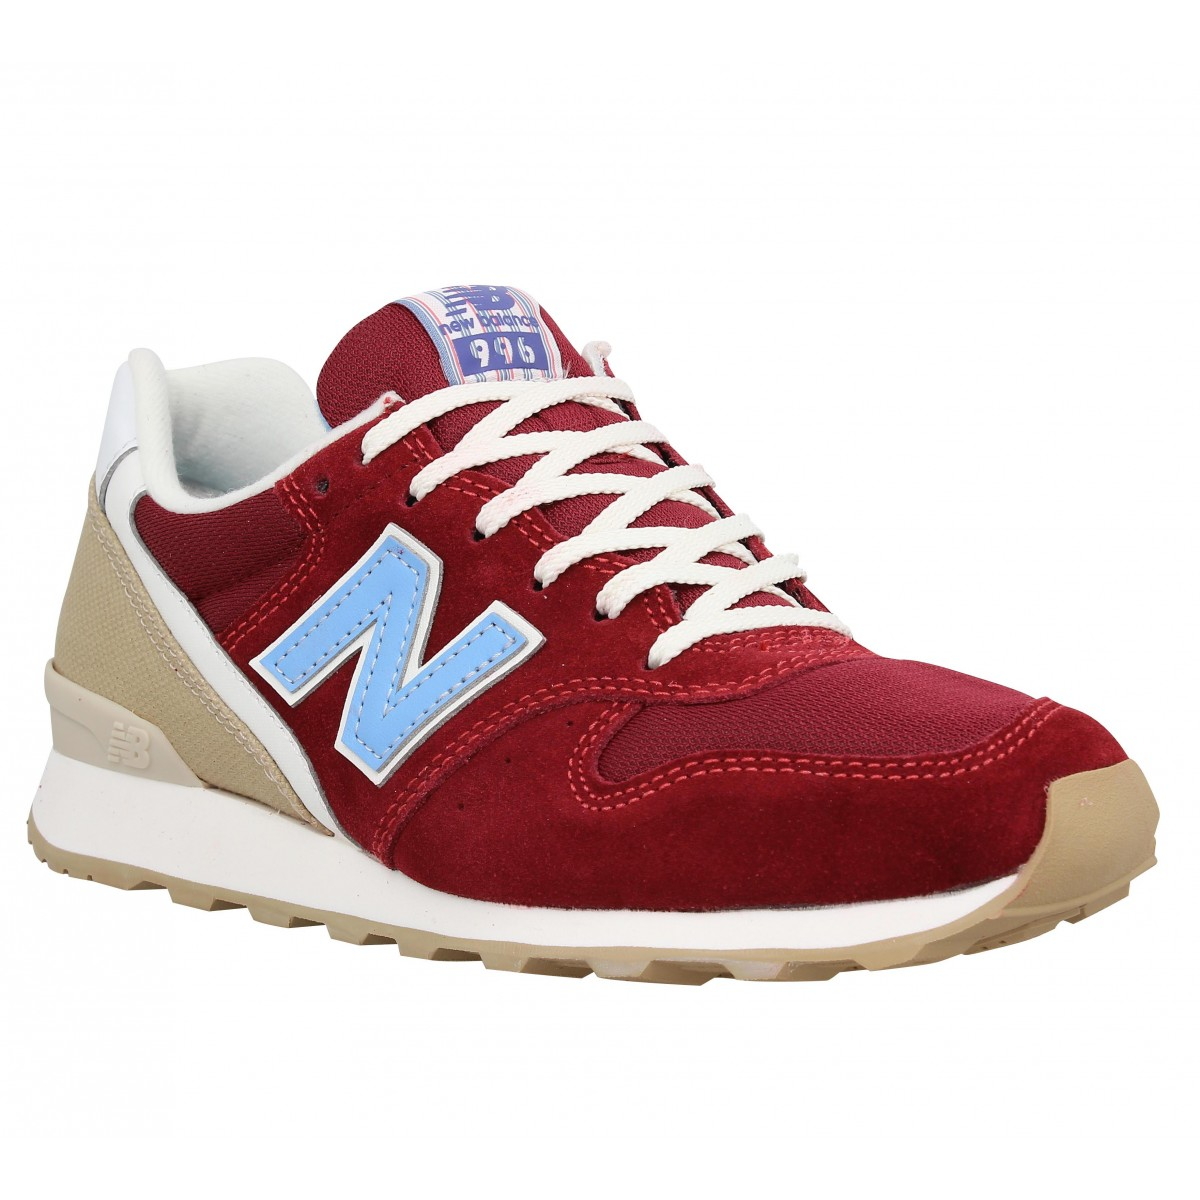 Baskets NEW BALANCE 996 velours + toile Femme Burgundy